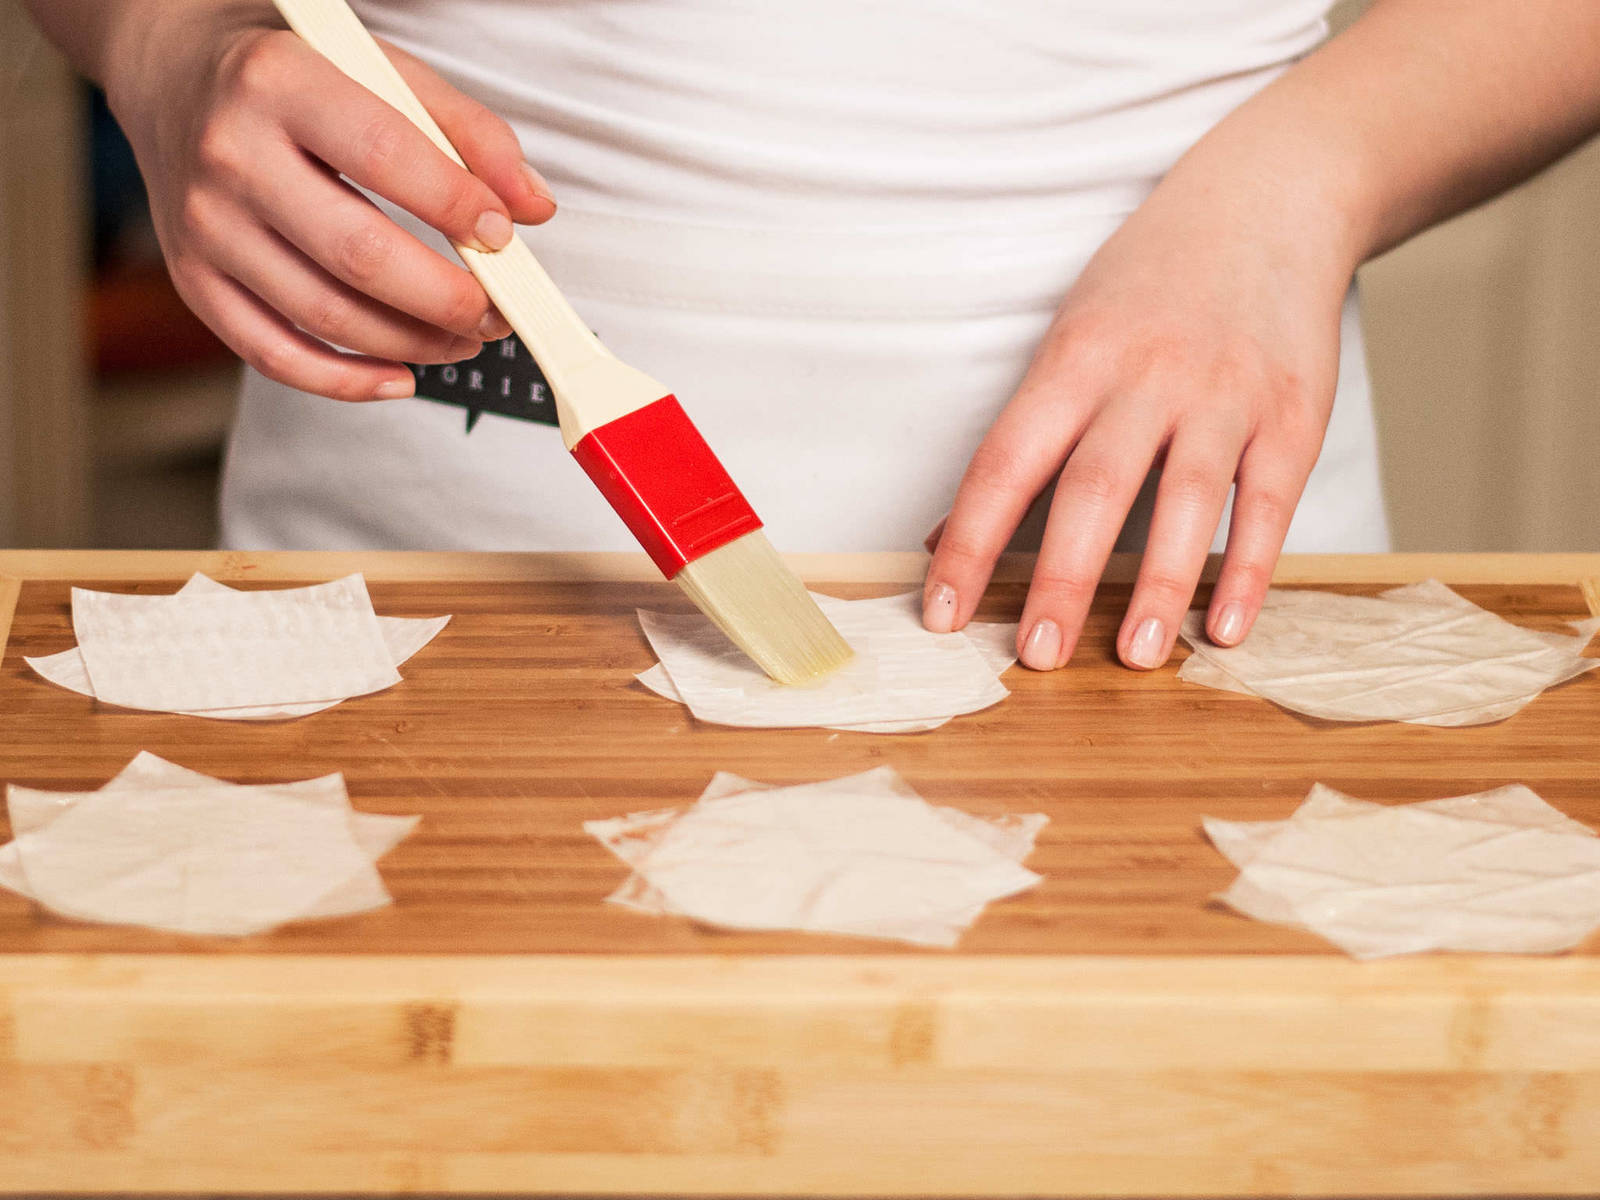 Cut phyllo dough into 5 cm squares on a lightly floured surface. Place two squares crosswise on top of each other. Melt one third of butter and brush dough with it.